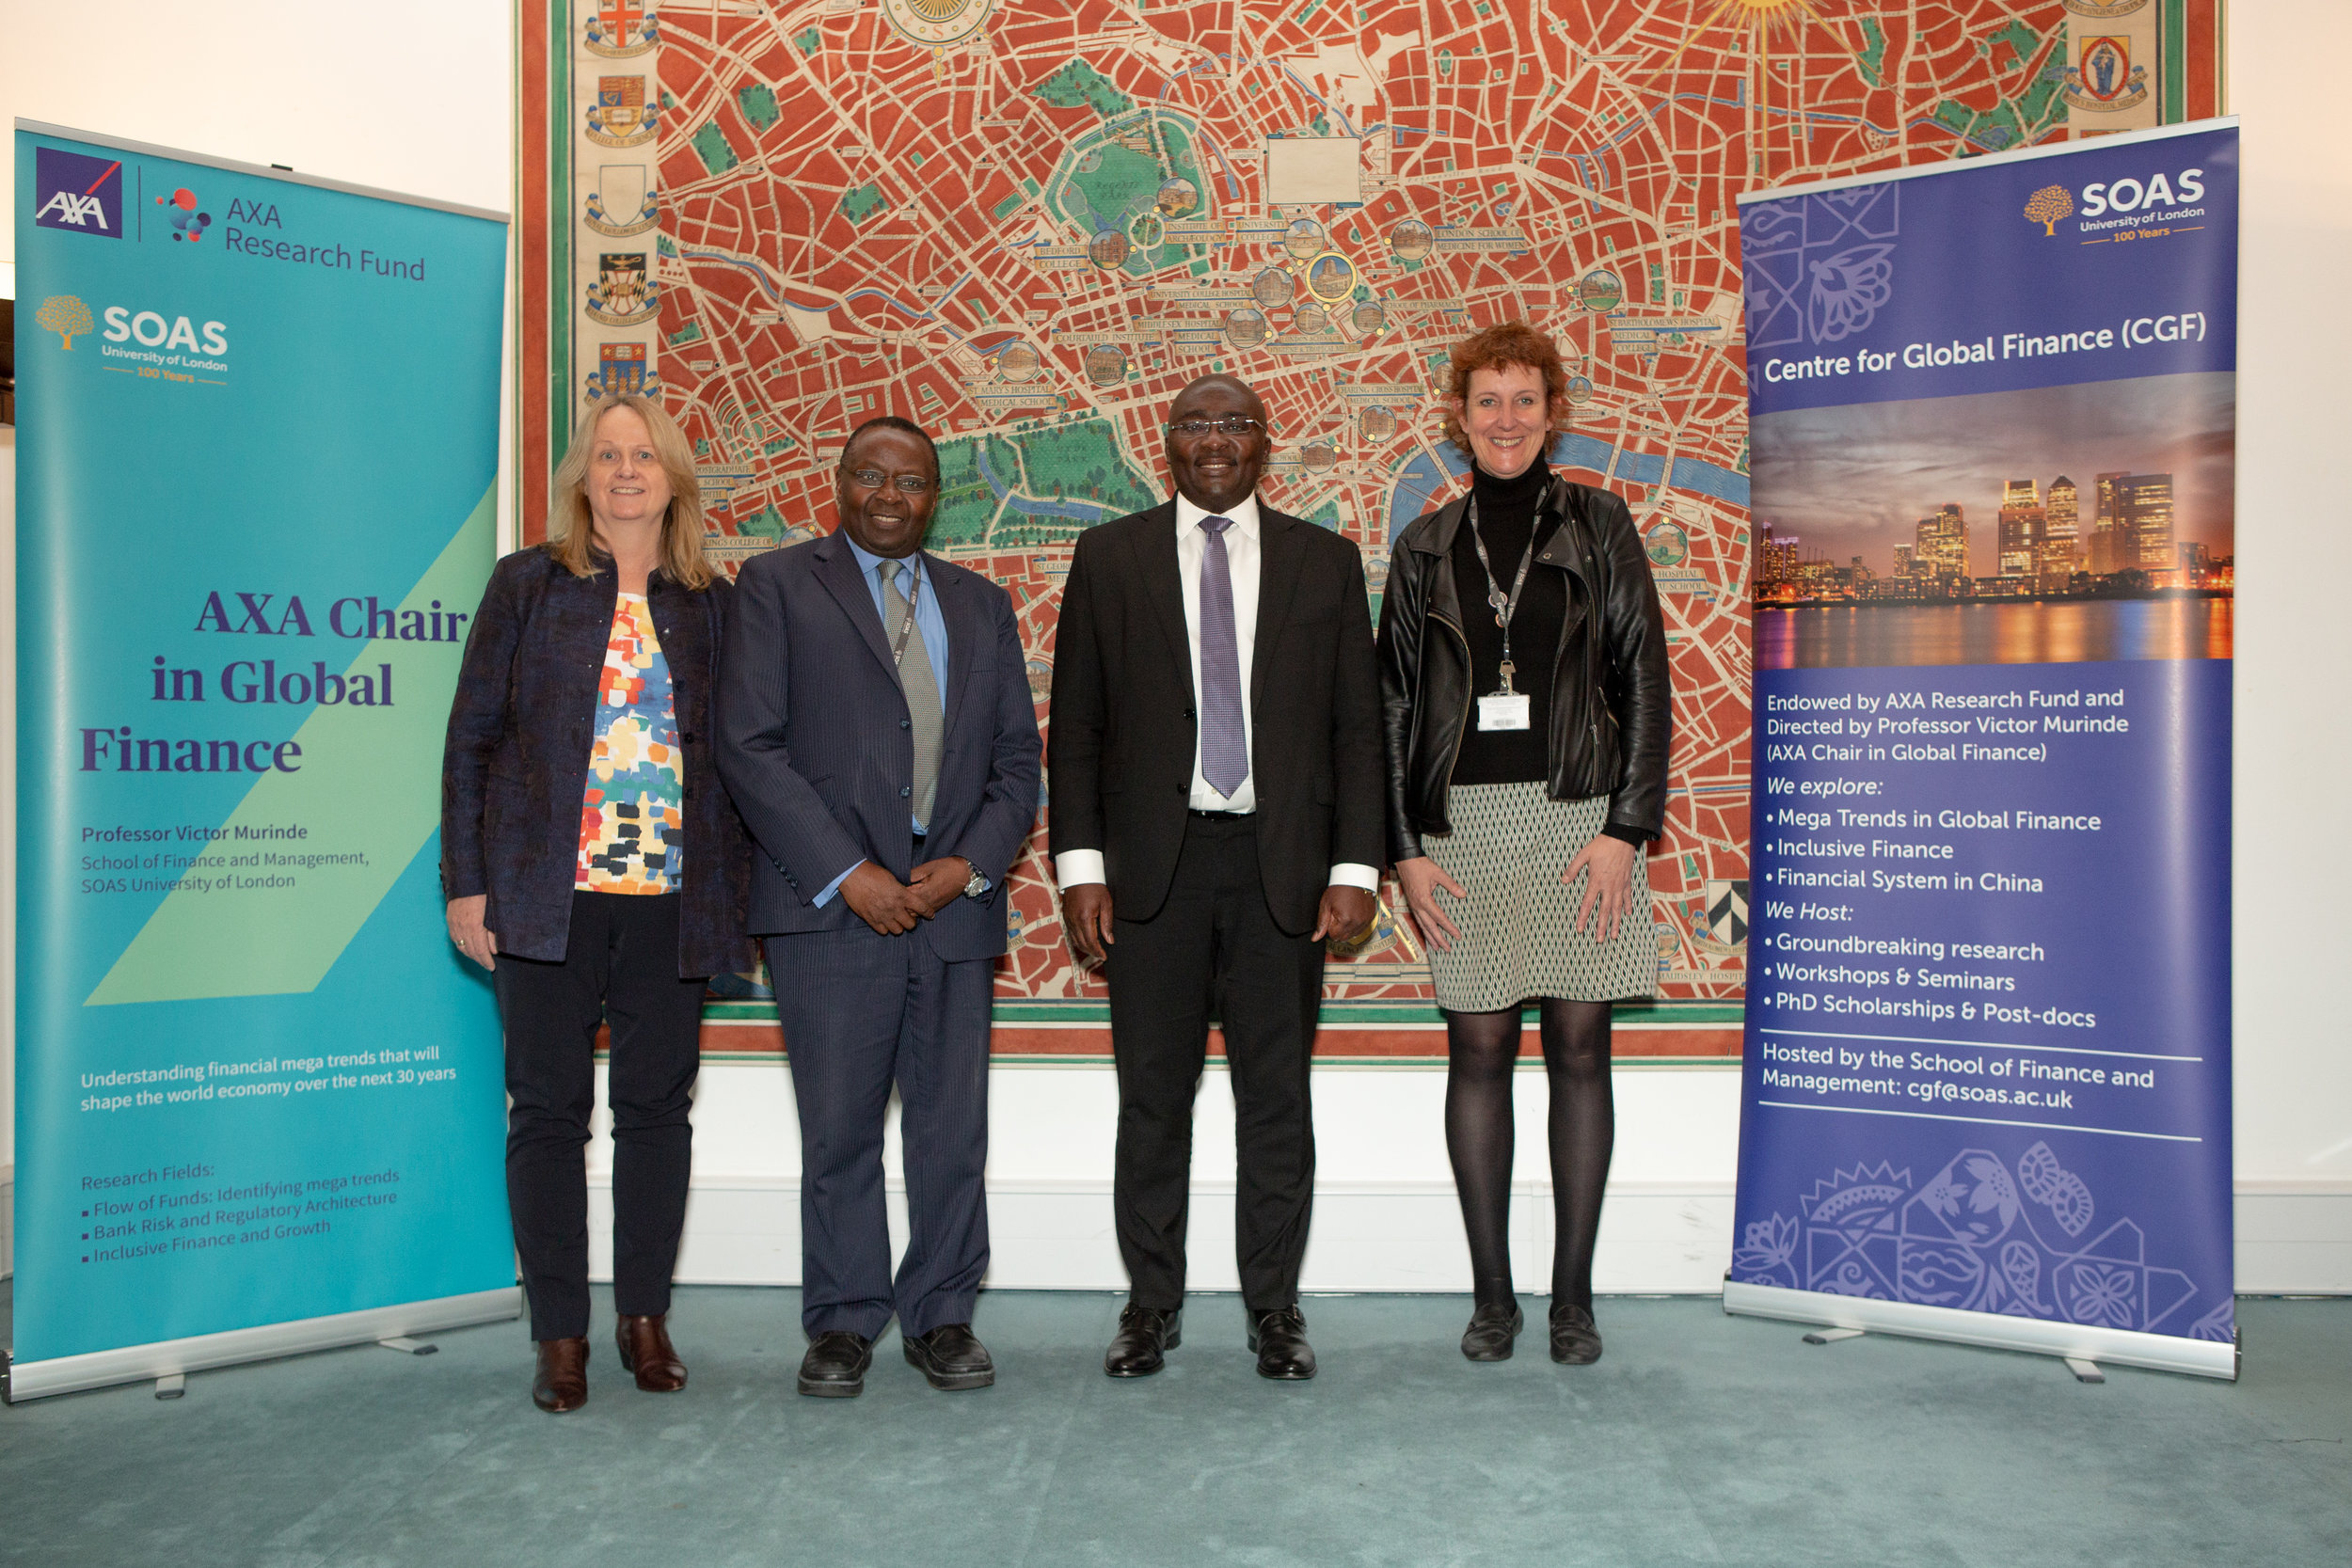 (left to right): Prof Christine Oughton, Prof Victor Murinde, H.E. Dr Mahamudu Bawumia, Prof Andrea Cornwall